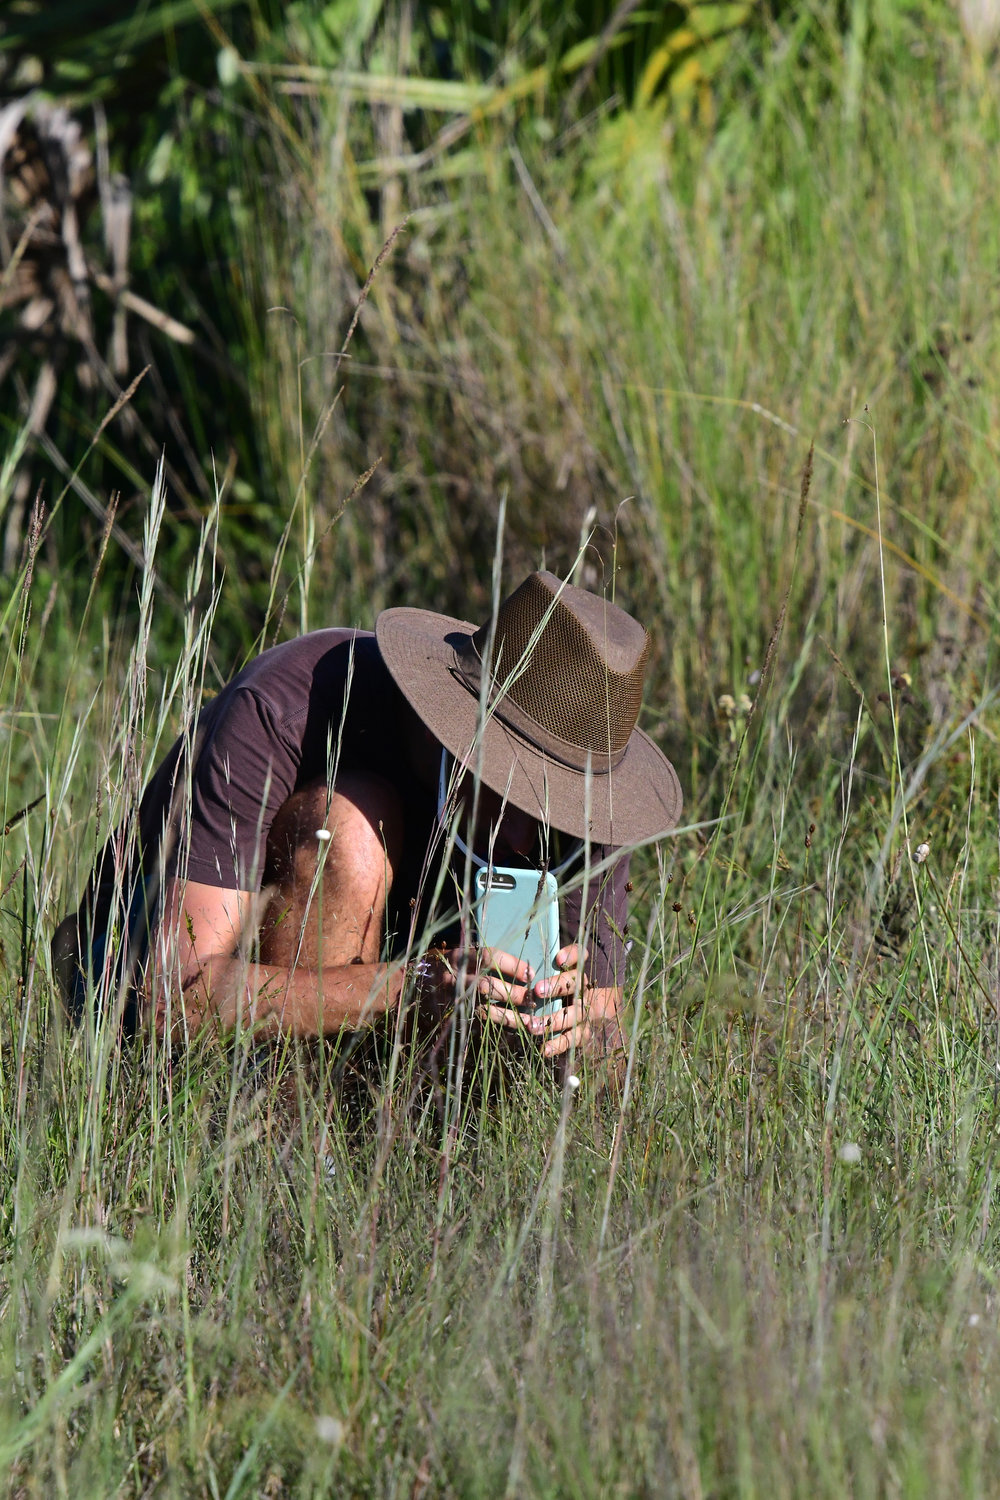 A participant at the Kissimmee Prairie bioblitz takes a picture with his phone to upload to iNaturalist for identification. Photo by  Ed Perry